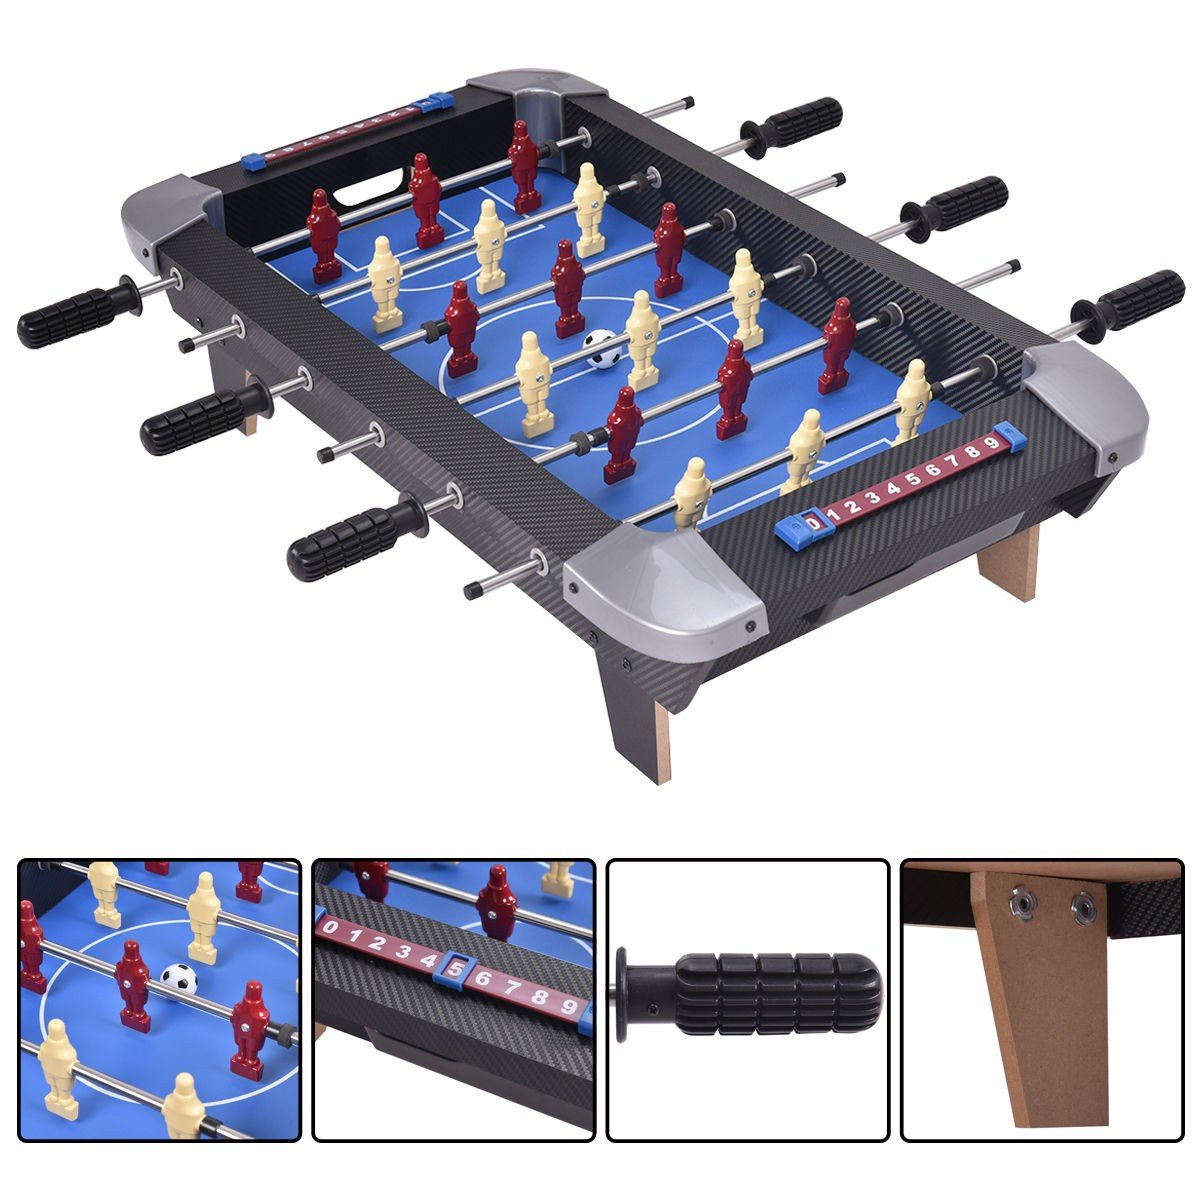 CWY 28'' Indoor Football Soccer Game Table